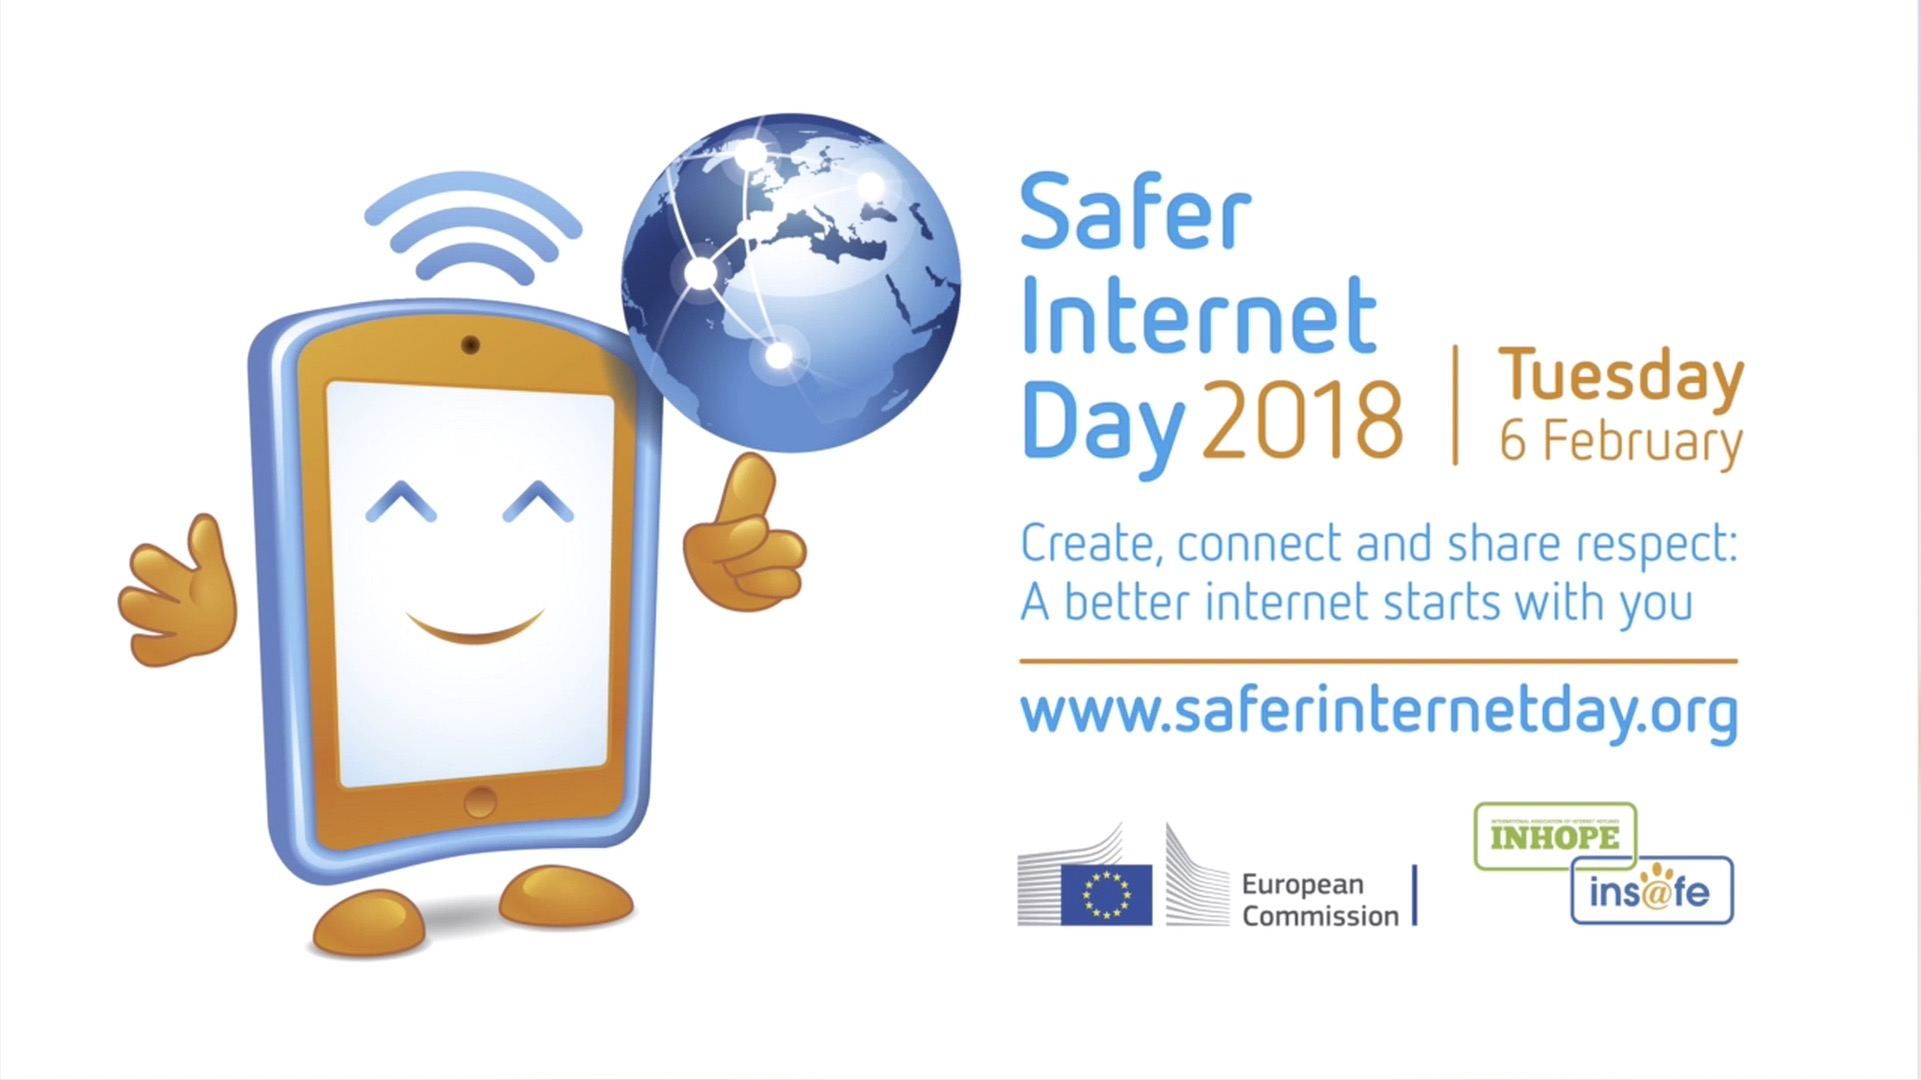 Safer Internet Day Video